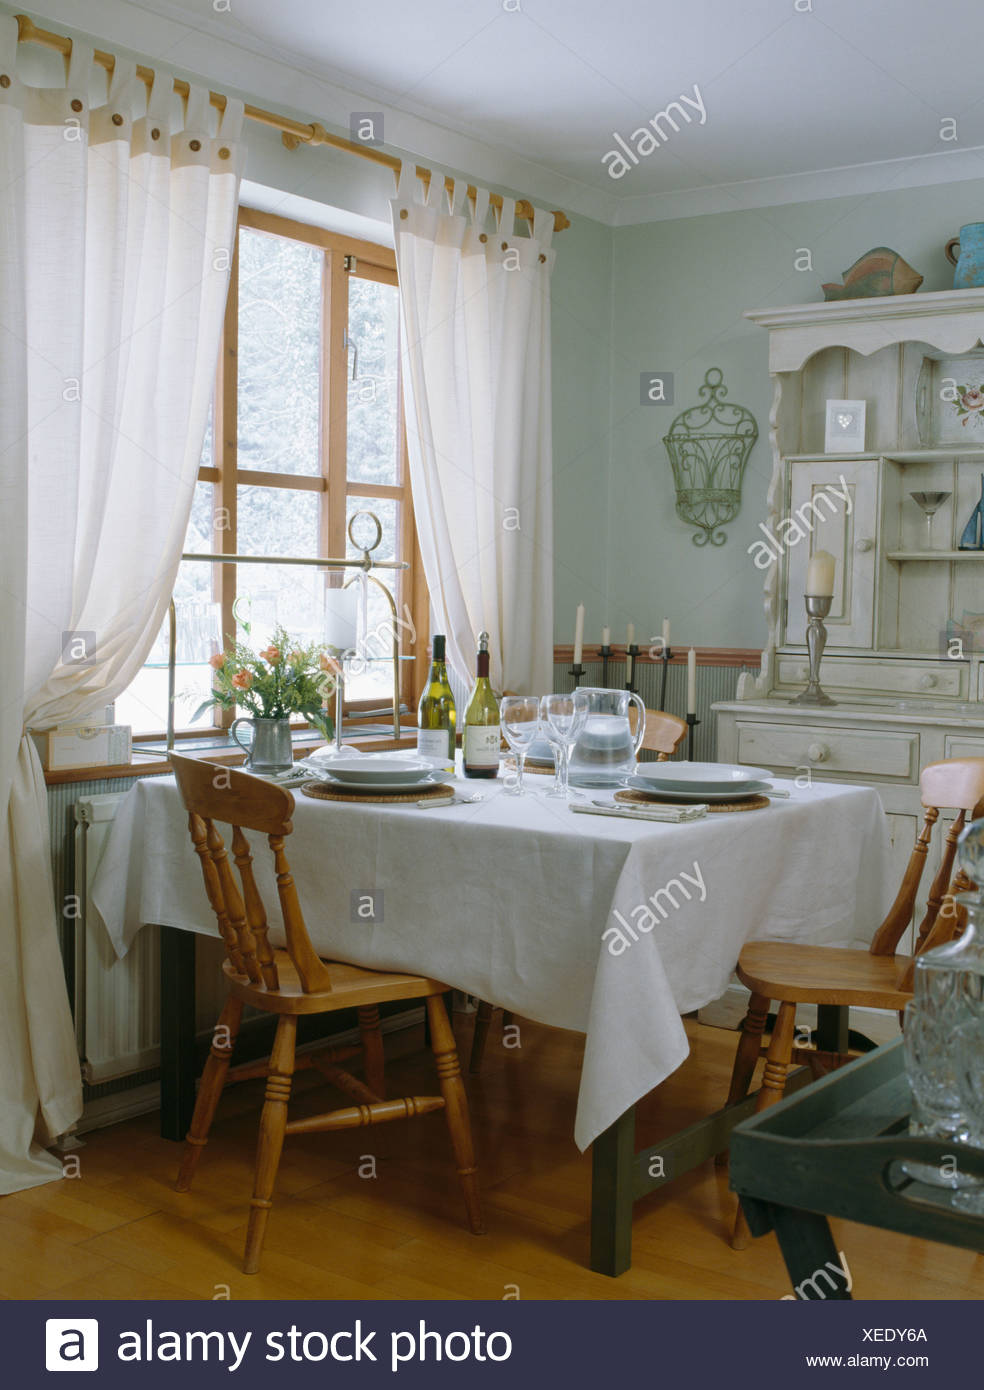 White Linen Cloth On Table With Simple Wooden Chairs In Pale Green Dining Room With White Curtains On Window Stock Photo Alamy